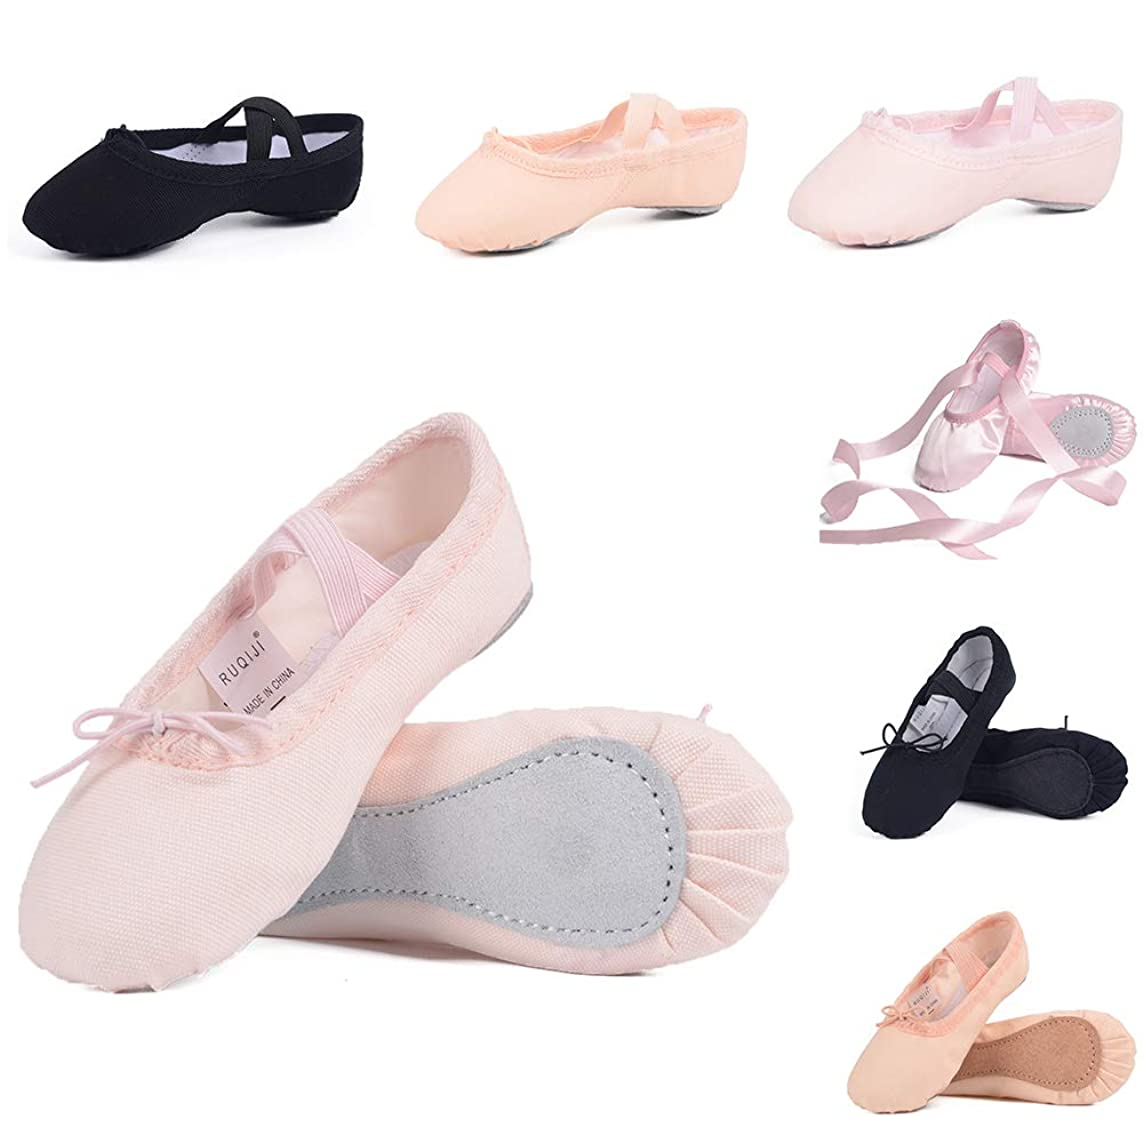 Ballet Shoes for Girls/Toddlers/Kids, Black Canvas Ballet Shoes/Pink Ballet Slippers/Dance Shoes